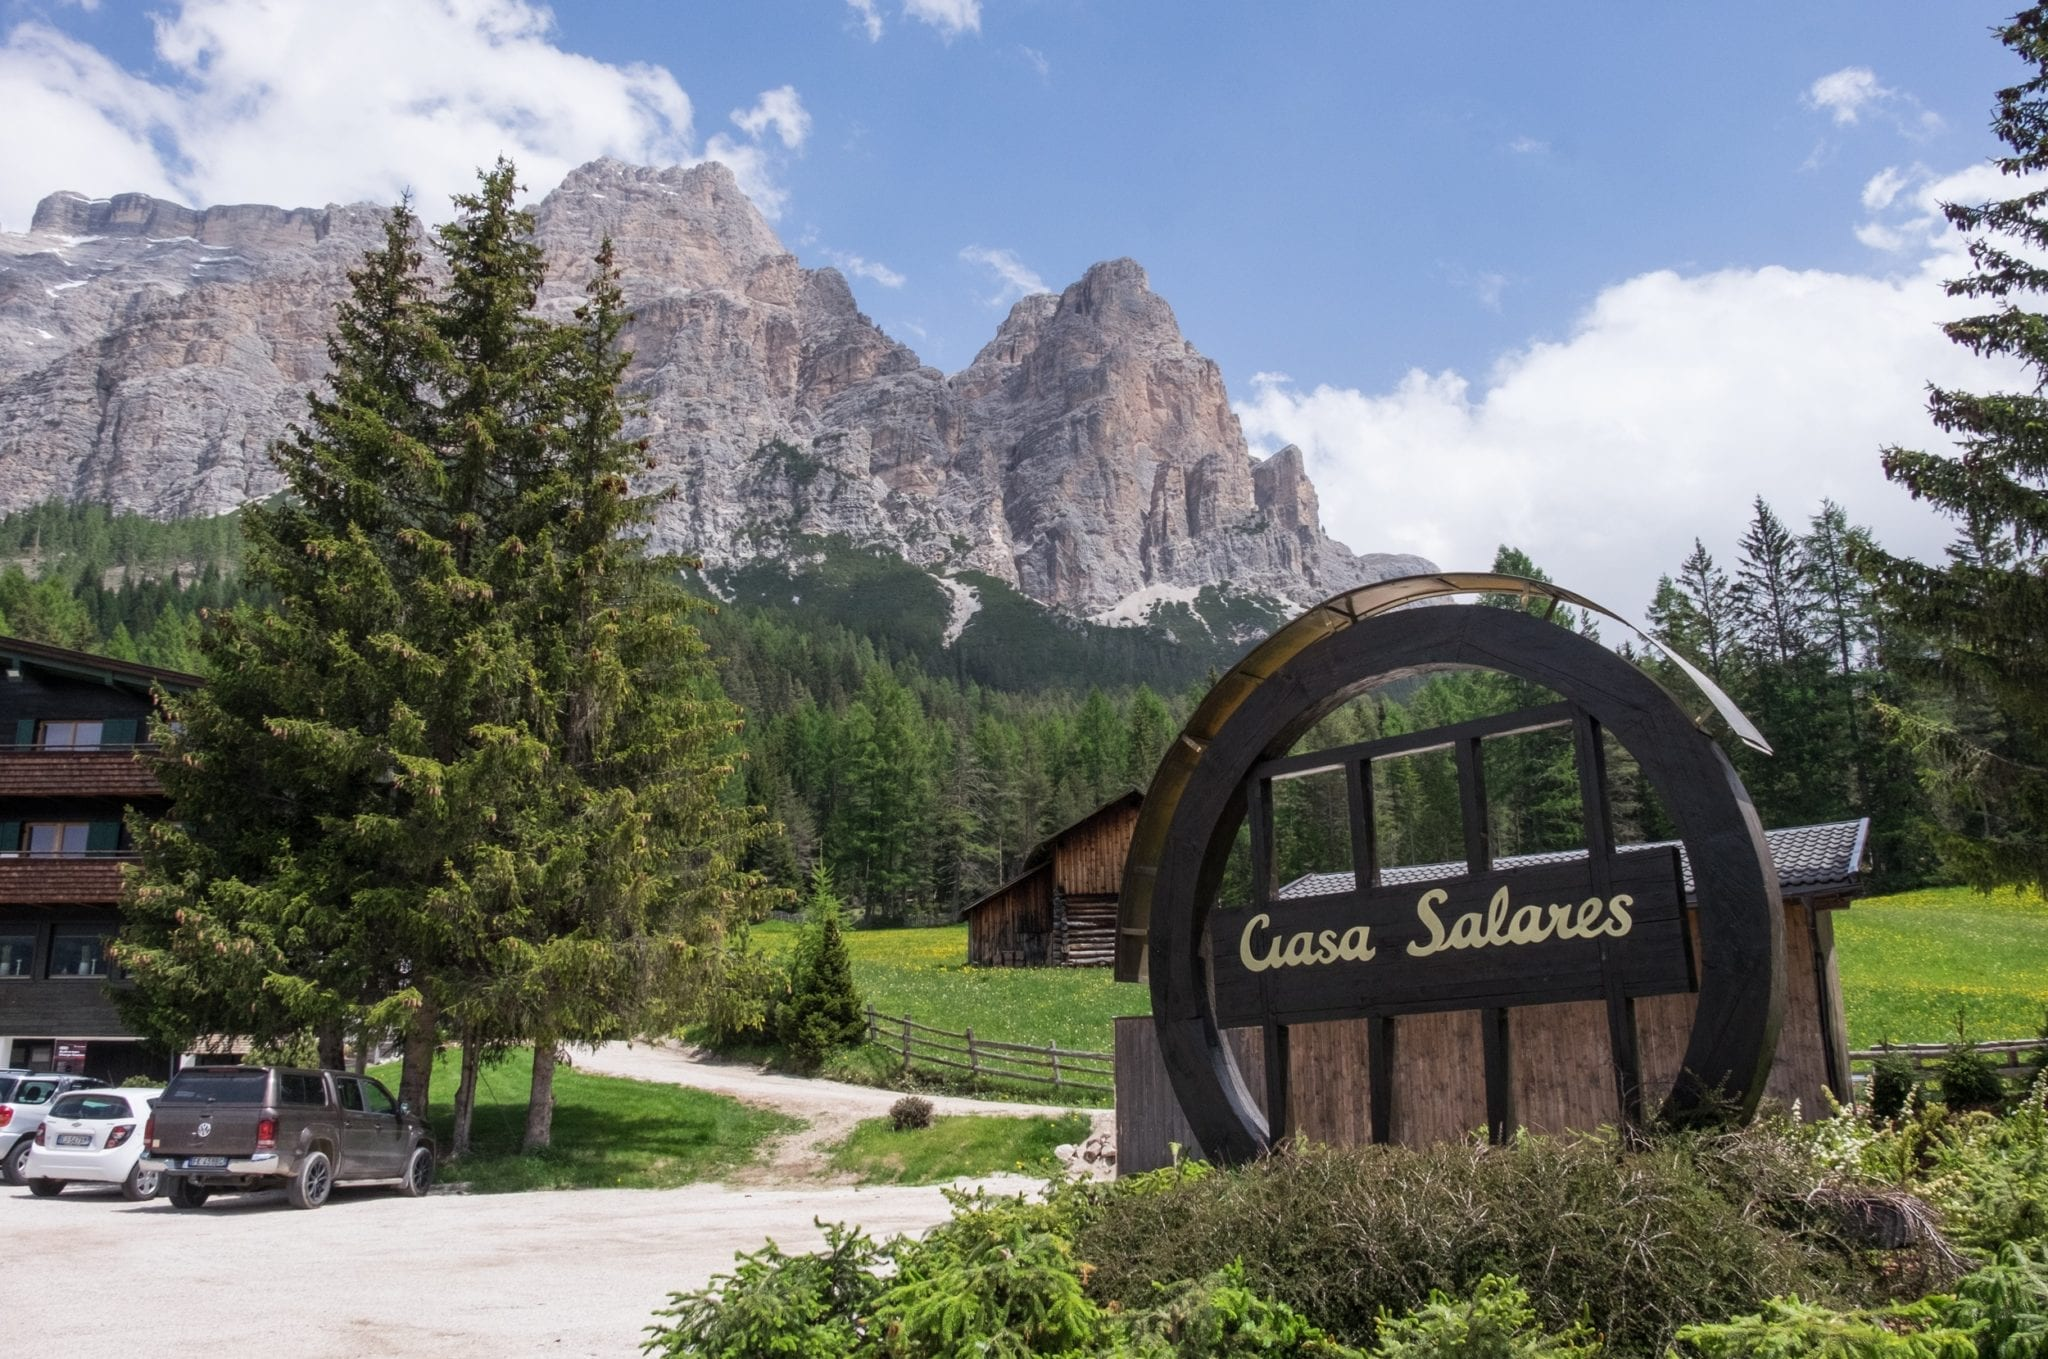 """Ciasa Salares"" is written in a round sign in front of a backdrop of jagged gray mountains, green pine trees, and blue sky."